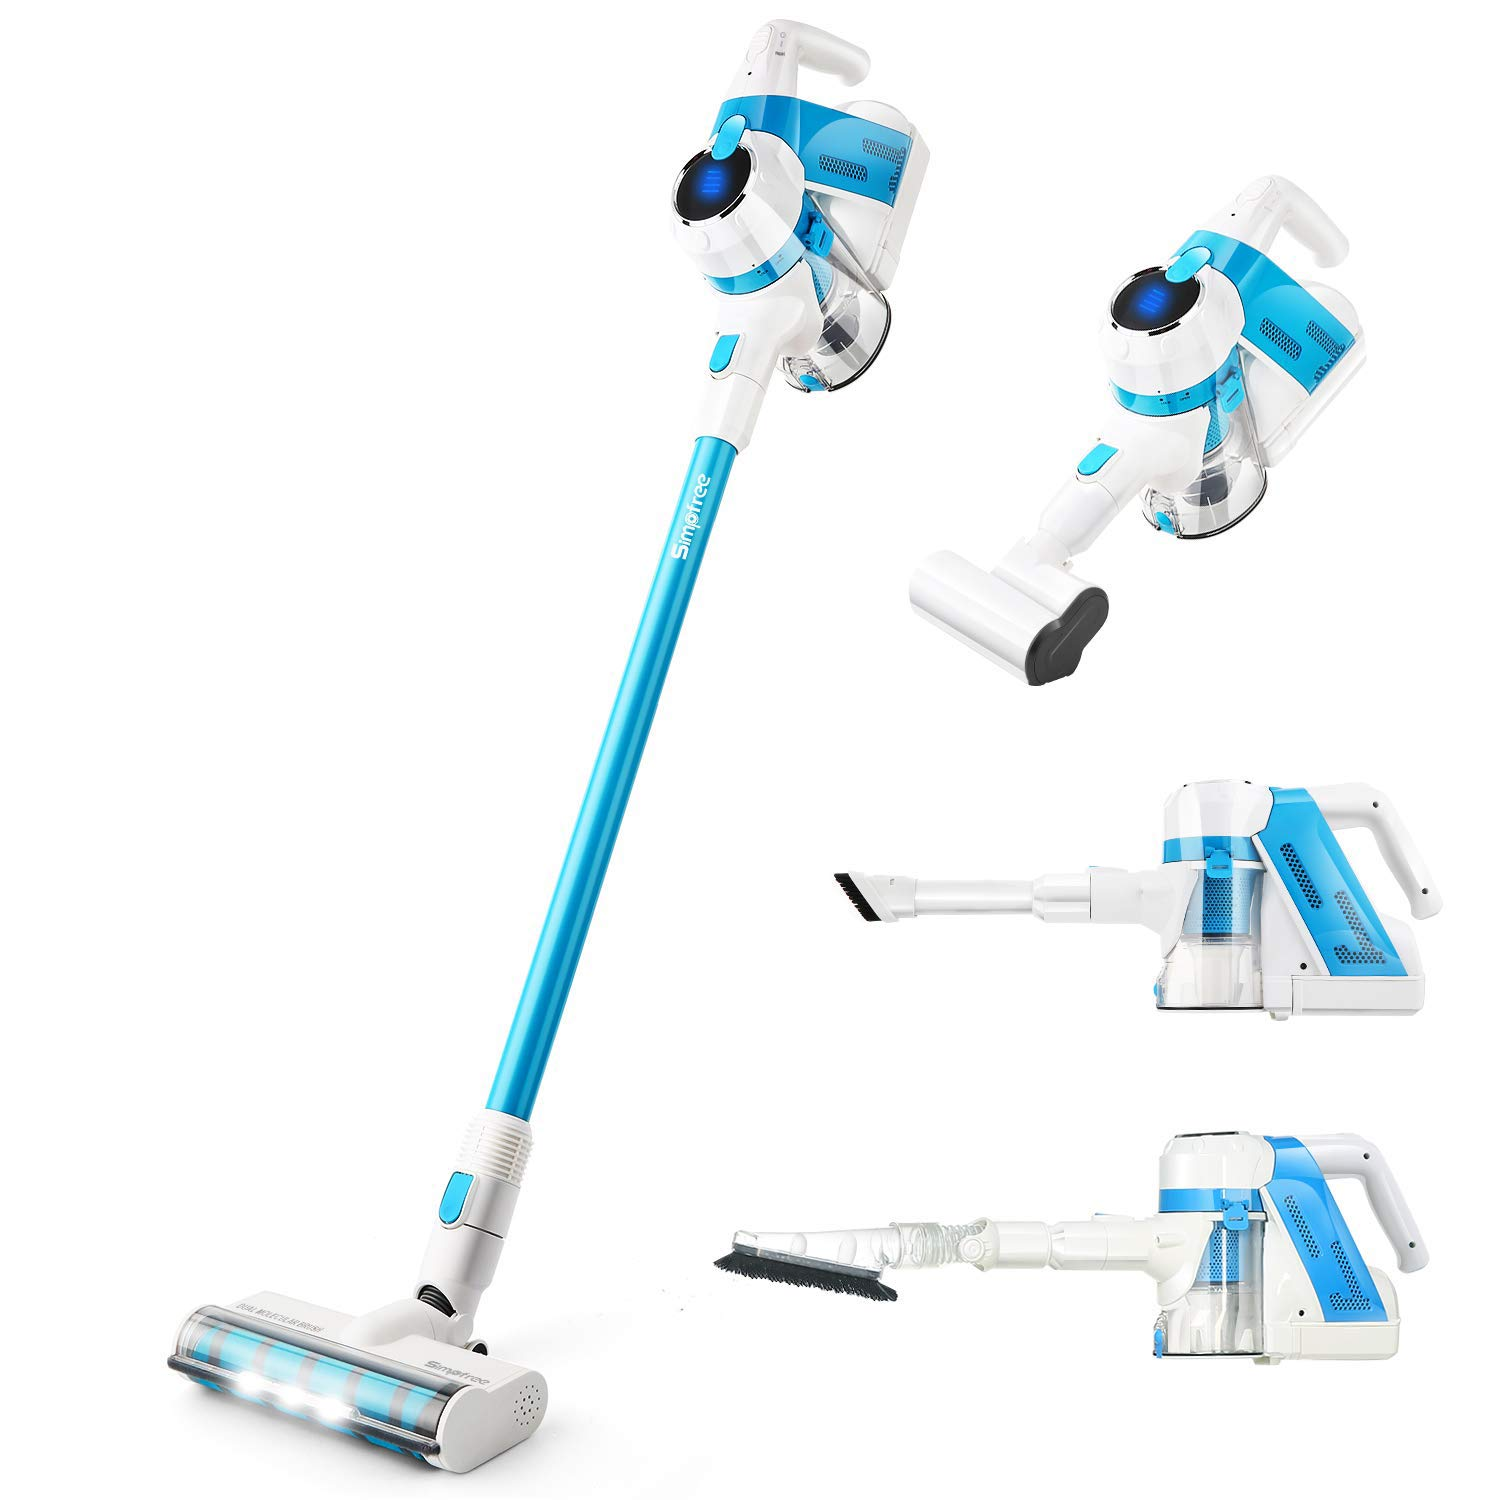 SIMPFREE Cordless Vacuum, Lightweight Cordless Stick Vacuum with Electric Hose & LED Brush, Free Two Rechargeable Lithium Ion Battery, Hand Vacuum for Carpet & Hardfloor - 5 in 1 Vacuum (5 in 1-V12)